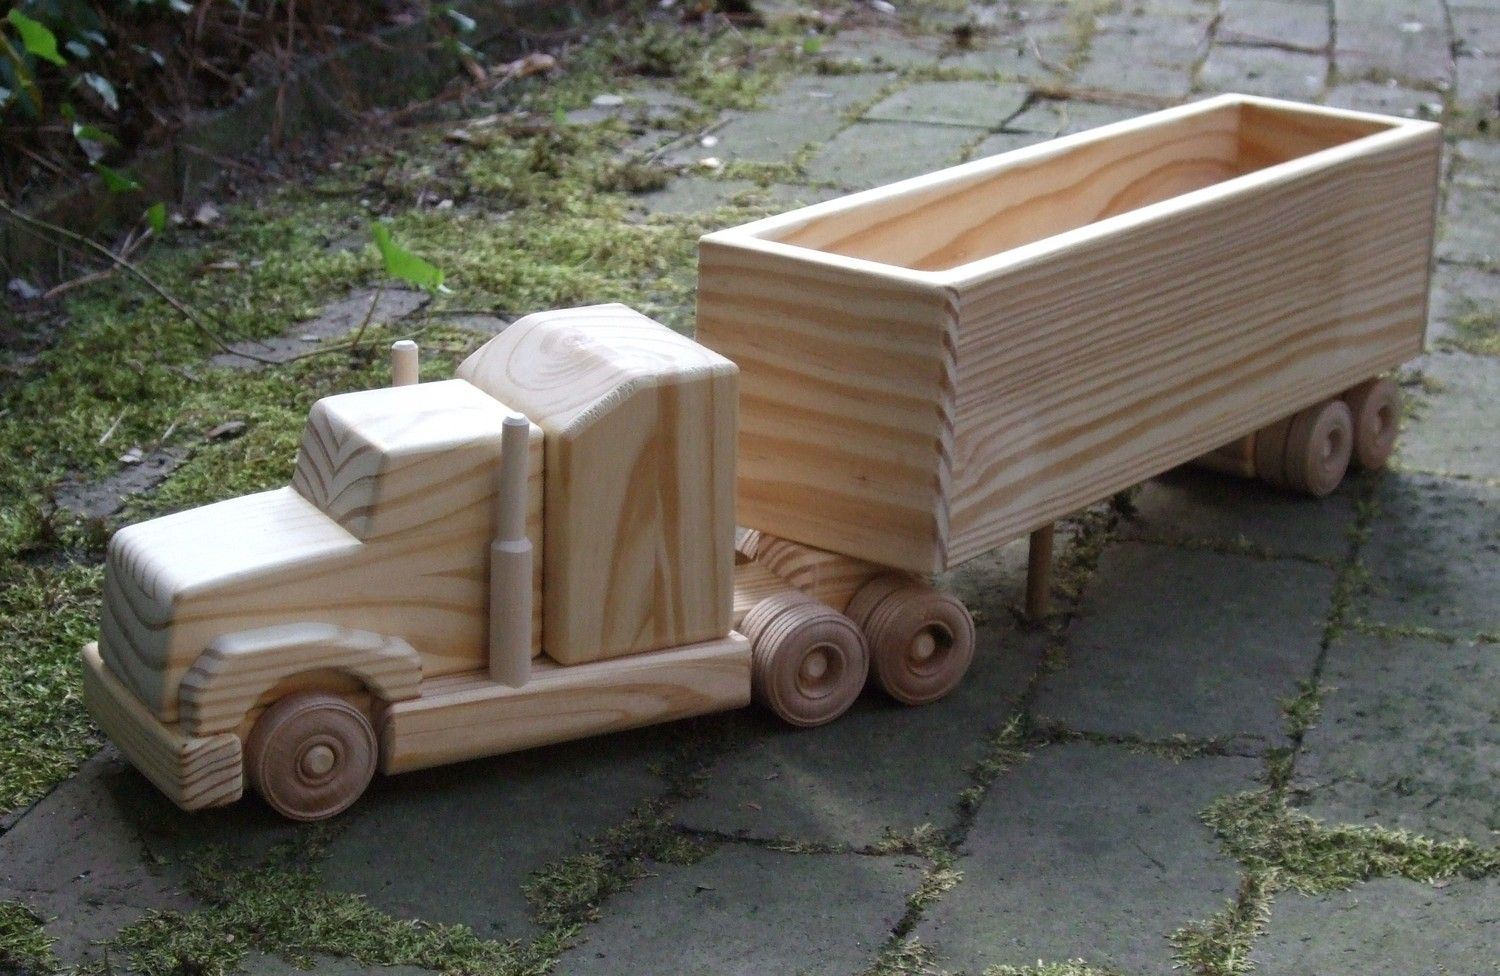 Woodworking Plans Toy Truck : Wooden toy truck by myfathershandsllc on etsy projects